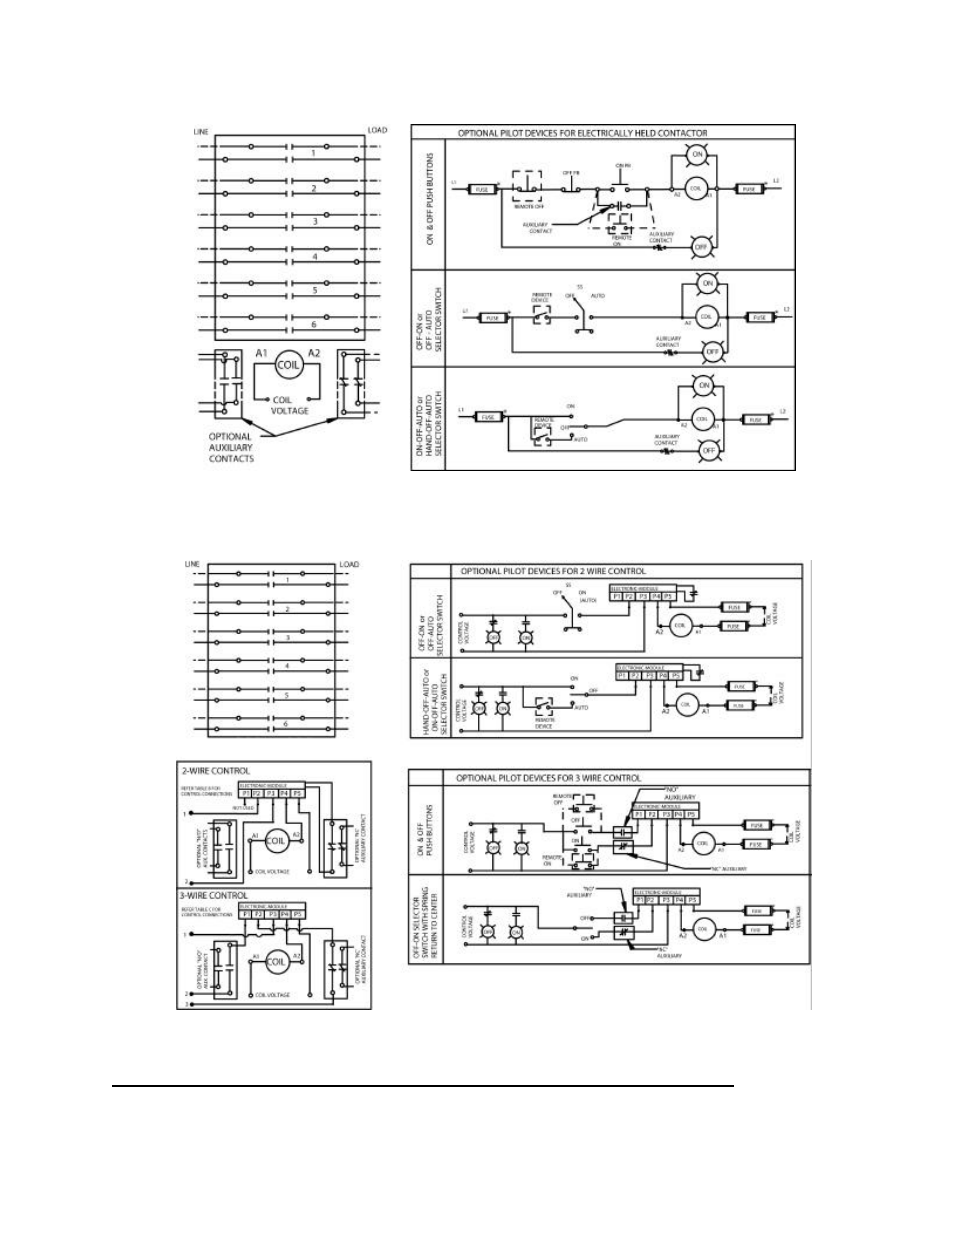 hight resolution of ge lighting contactor wiring diagrams wiring diagram used lighting contactor wiring diagram with photocell lighting contactors wiring diagrams